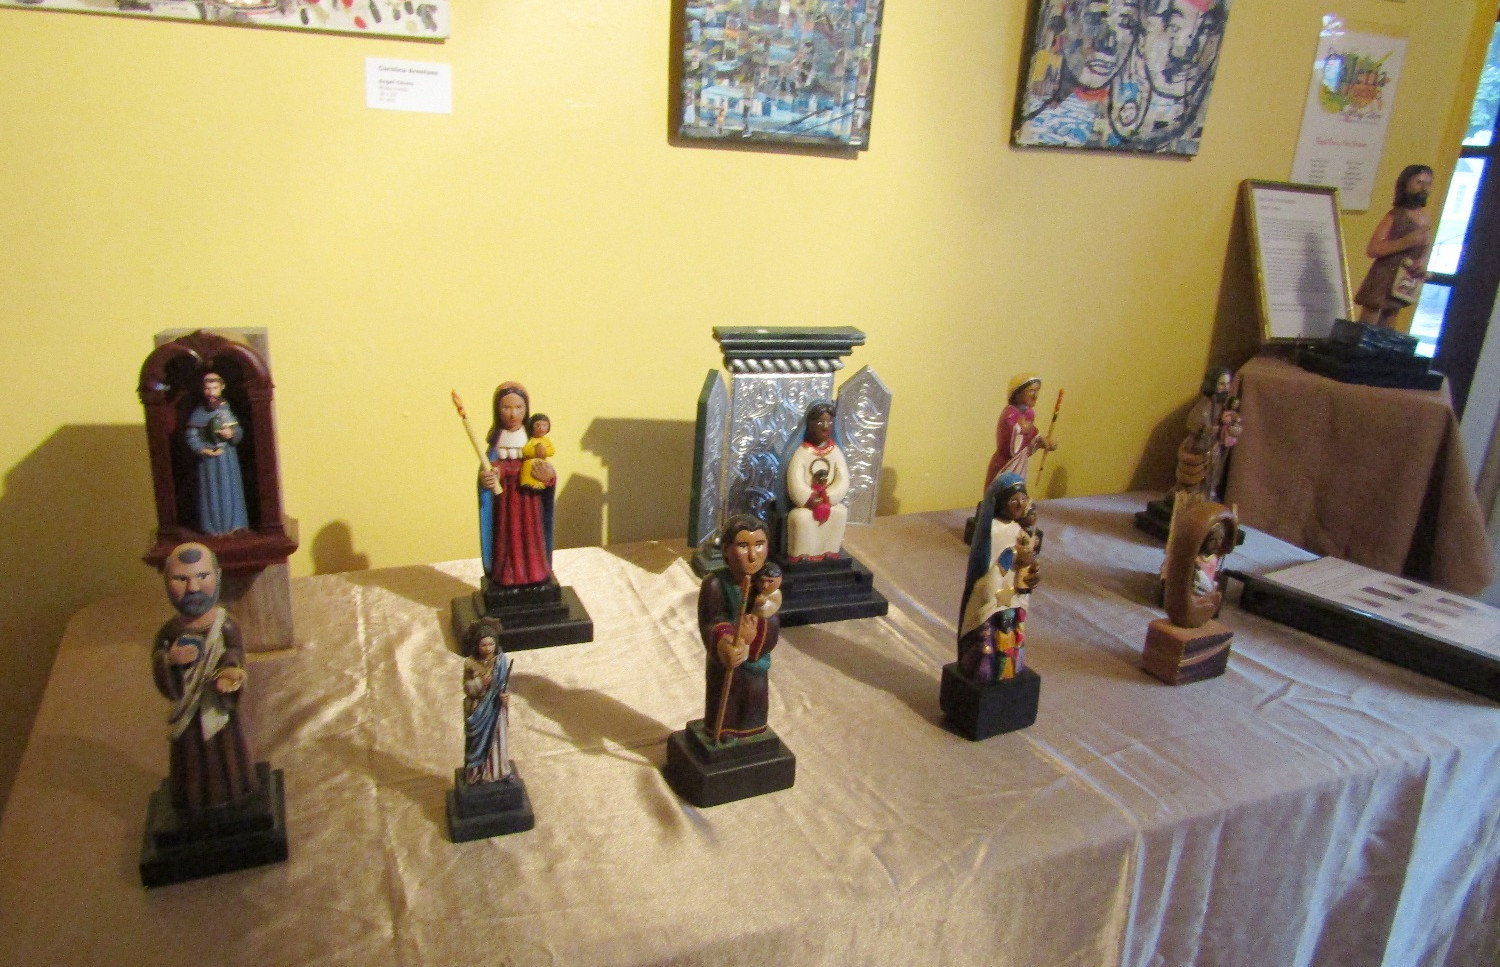 Wood Carving travel exhibit